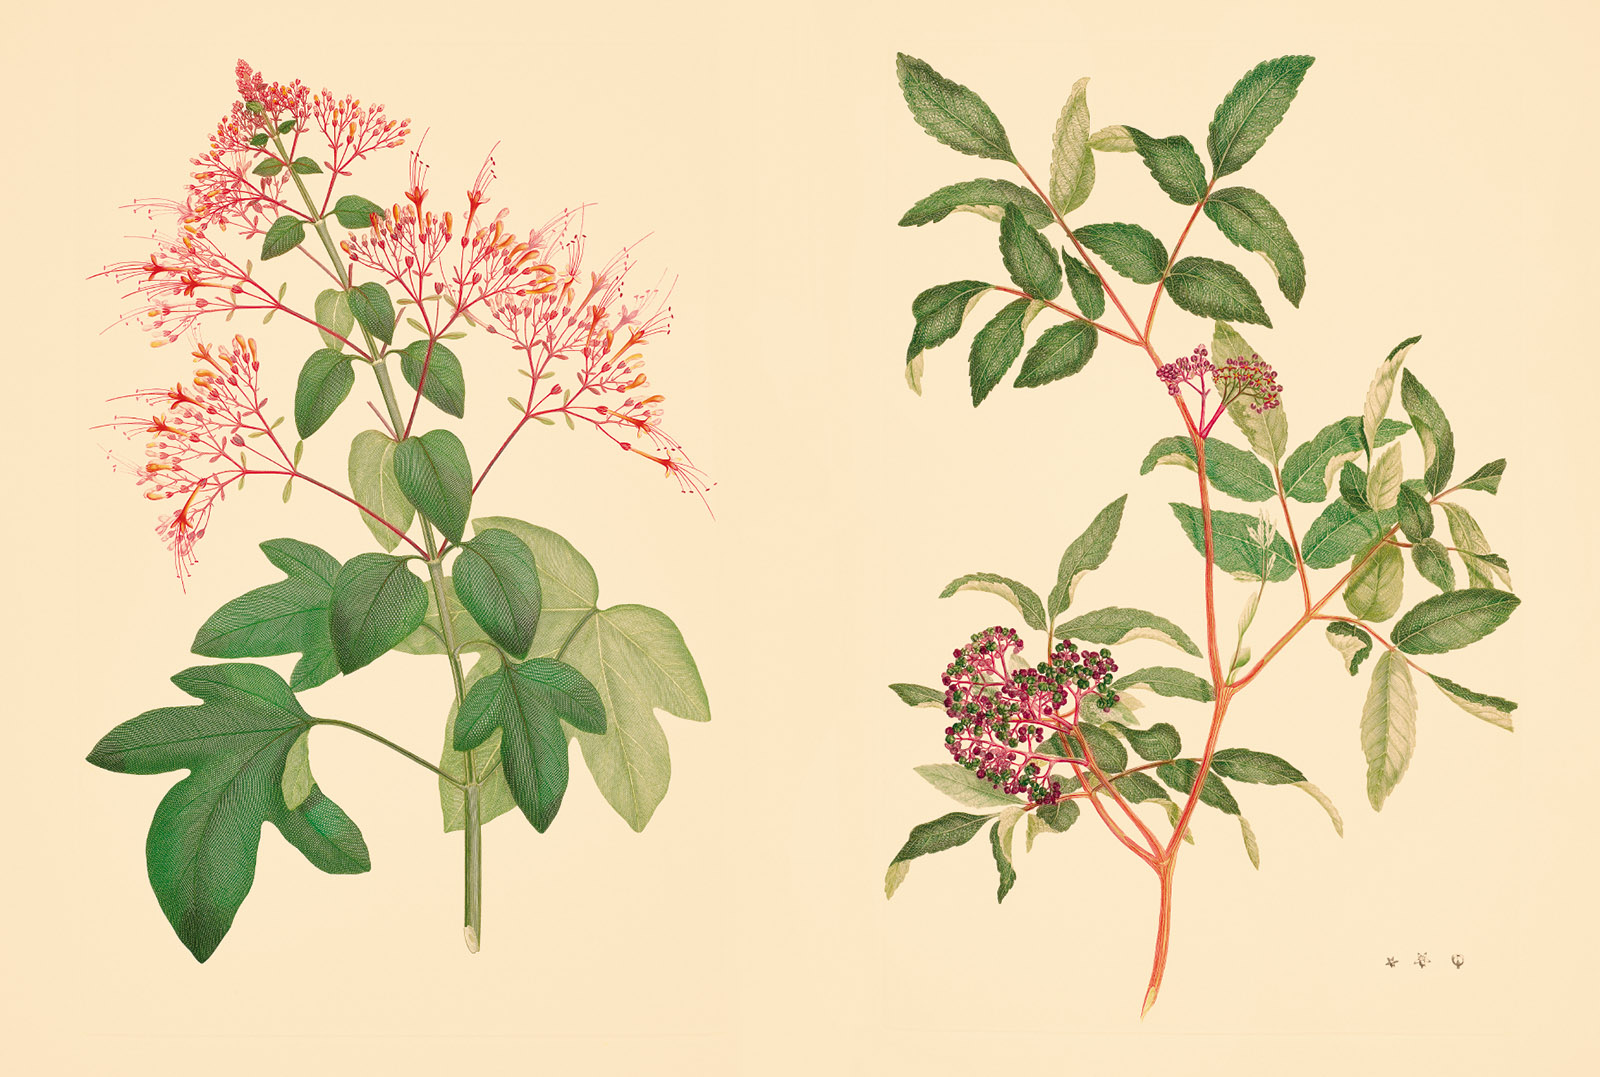 Engravings of Clerodendrum paniculatum and Leea rubra, two of the plants originally drawn by Sydney Parkinson in Java during the Endeavour expedition